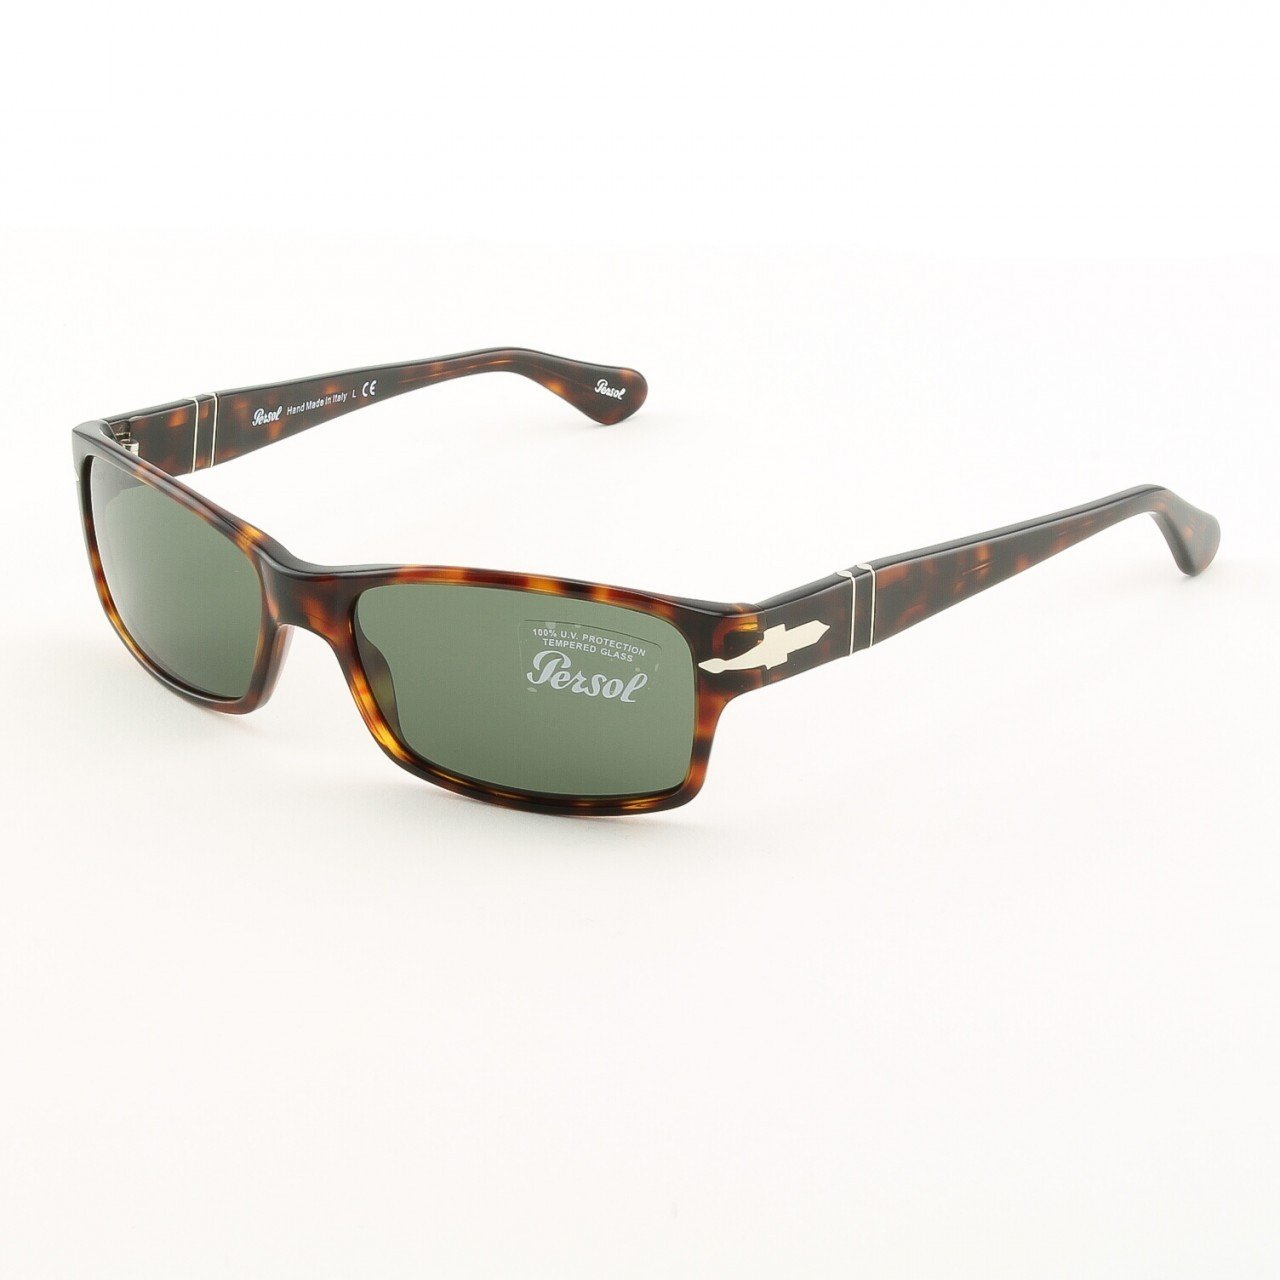 Persol PO2803S 24/31 55mm Havana Sunglasses with Grey Lenses